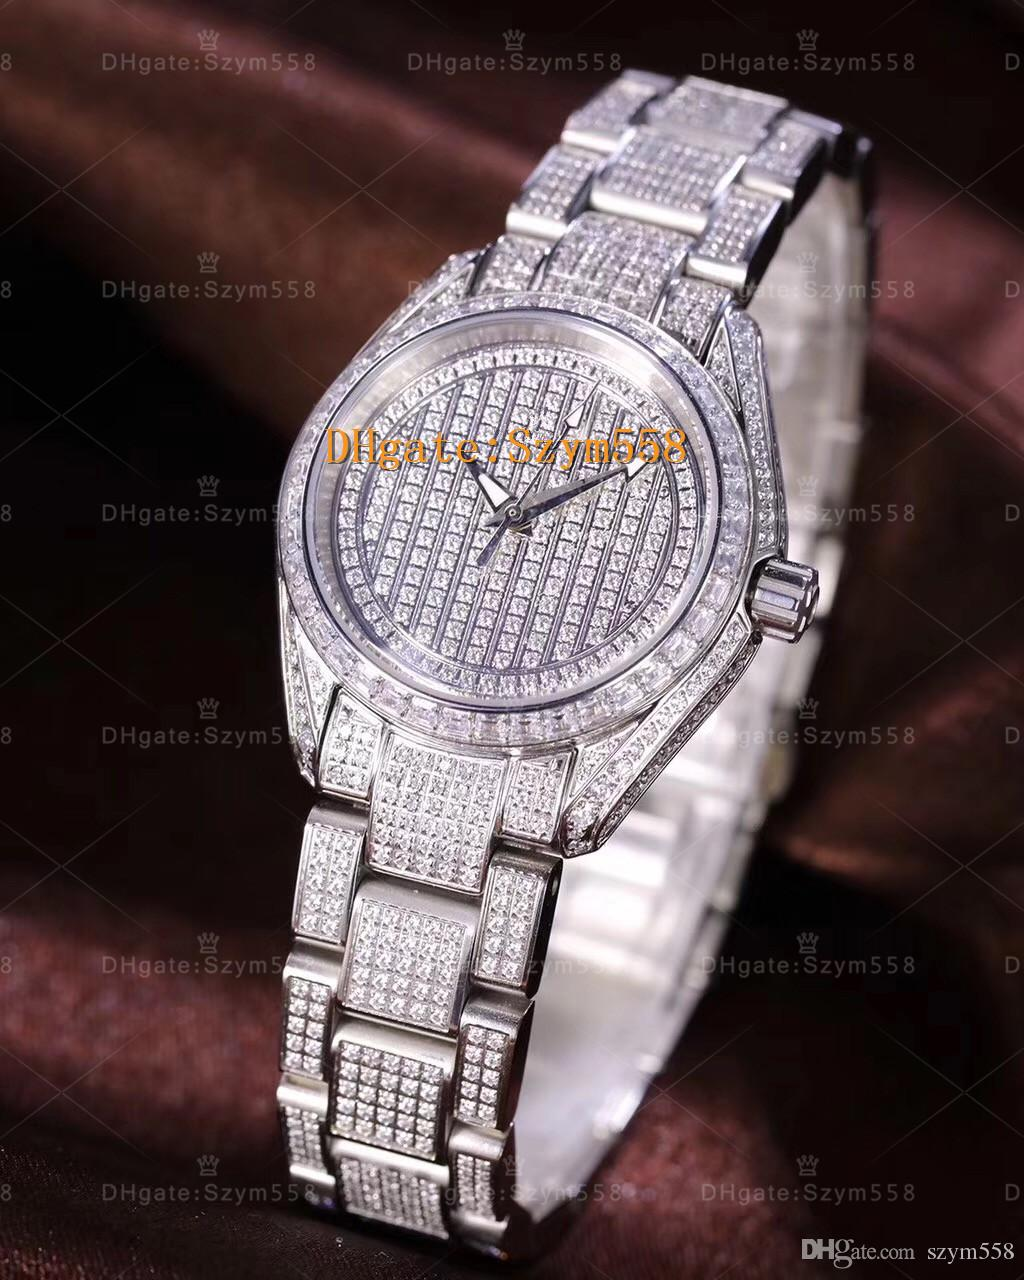 high product steel full rbvajfmenuwajr date diamond material machinery dimensions gold stainless store movement quality day strap automatic cz aaa watch